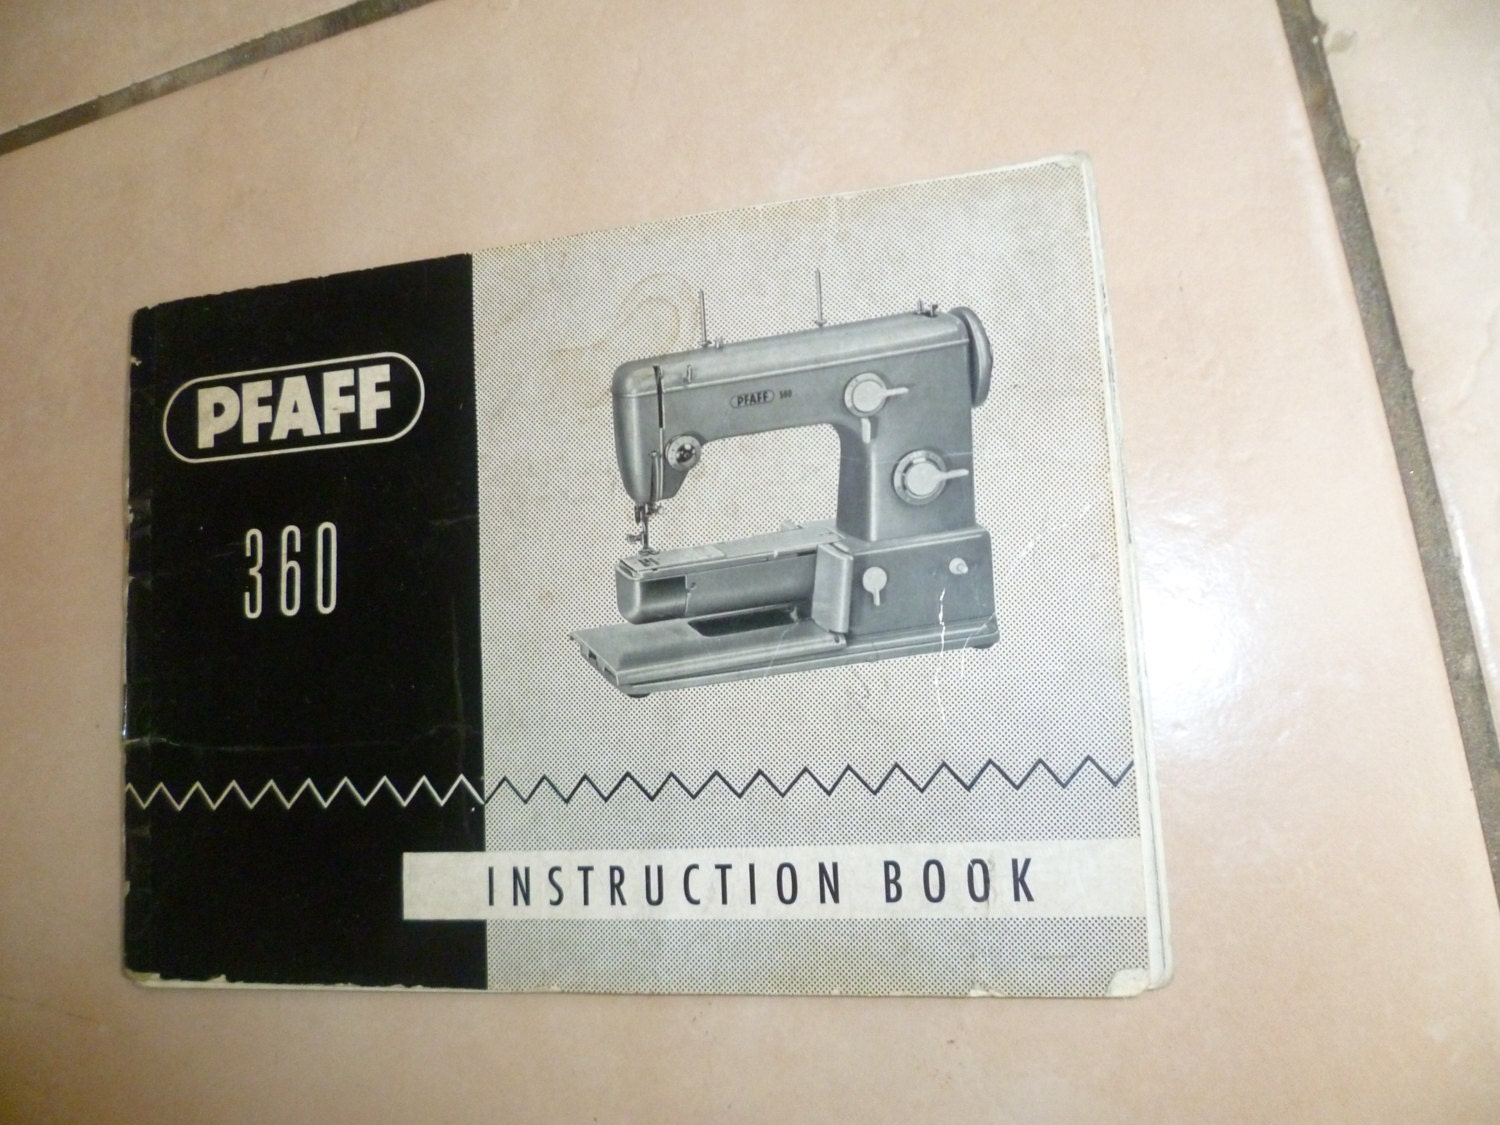 pfaff 360 sewing machine instruction manual from zionvintagecrafts on etsy studio. Black Bedroom Furniture Sets. Home Design Ideas